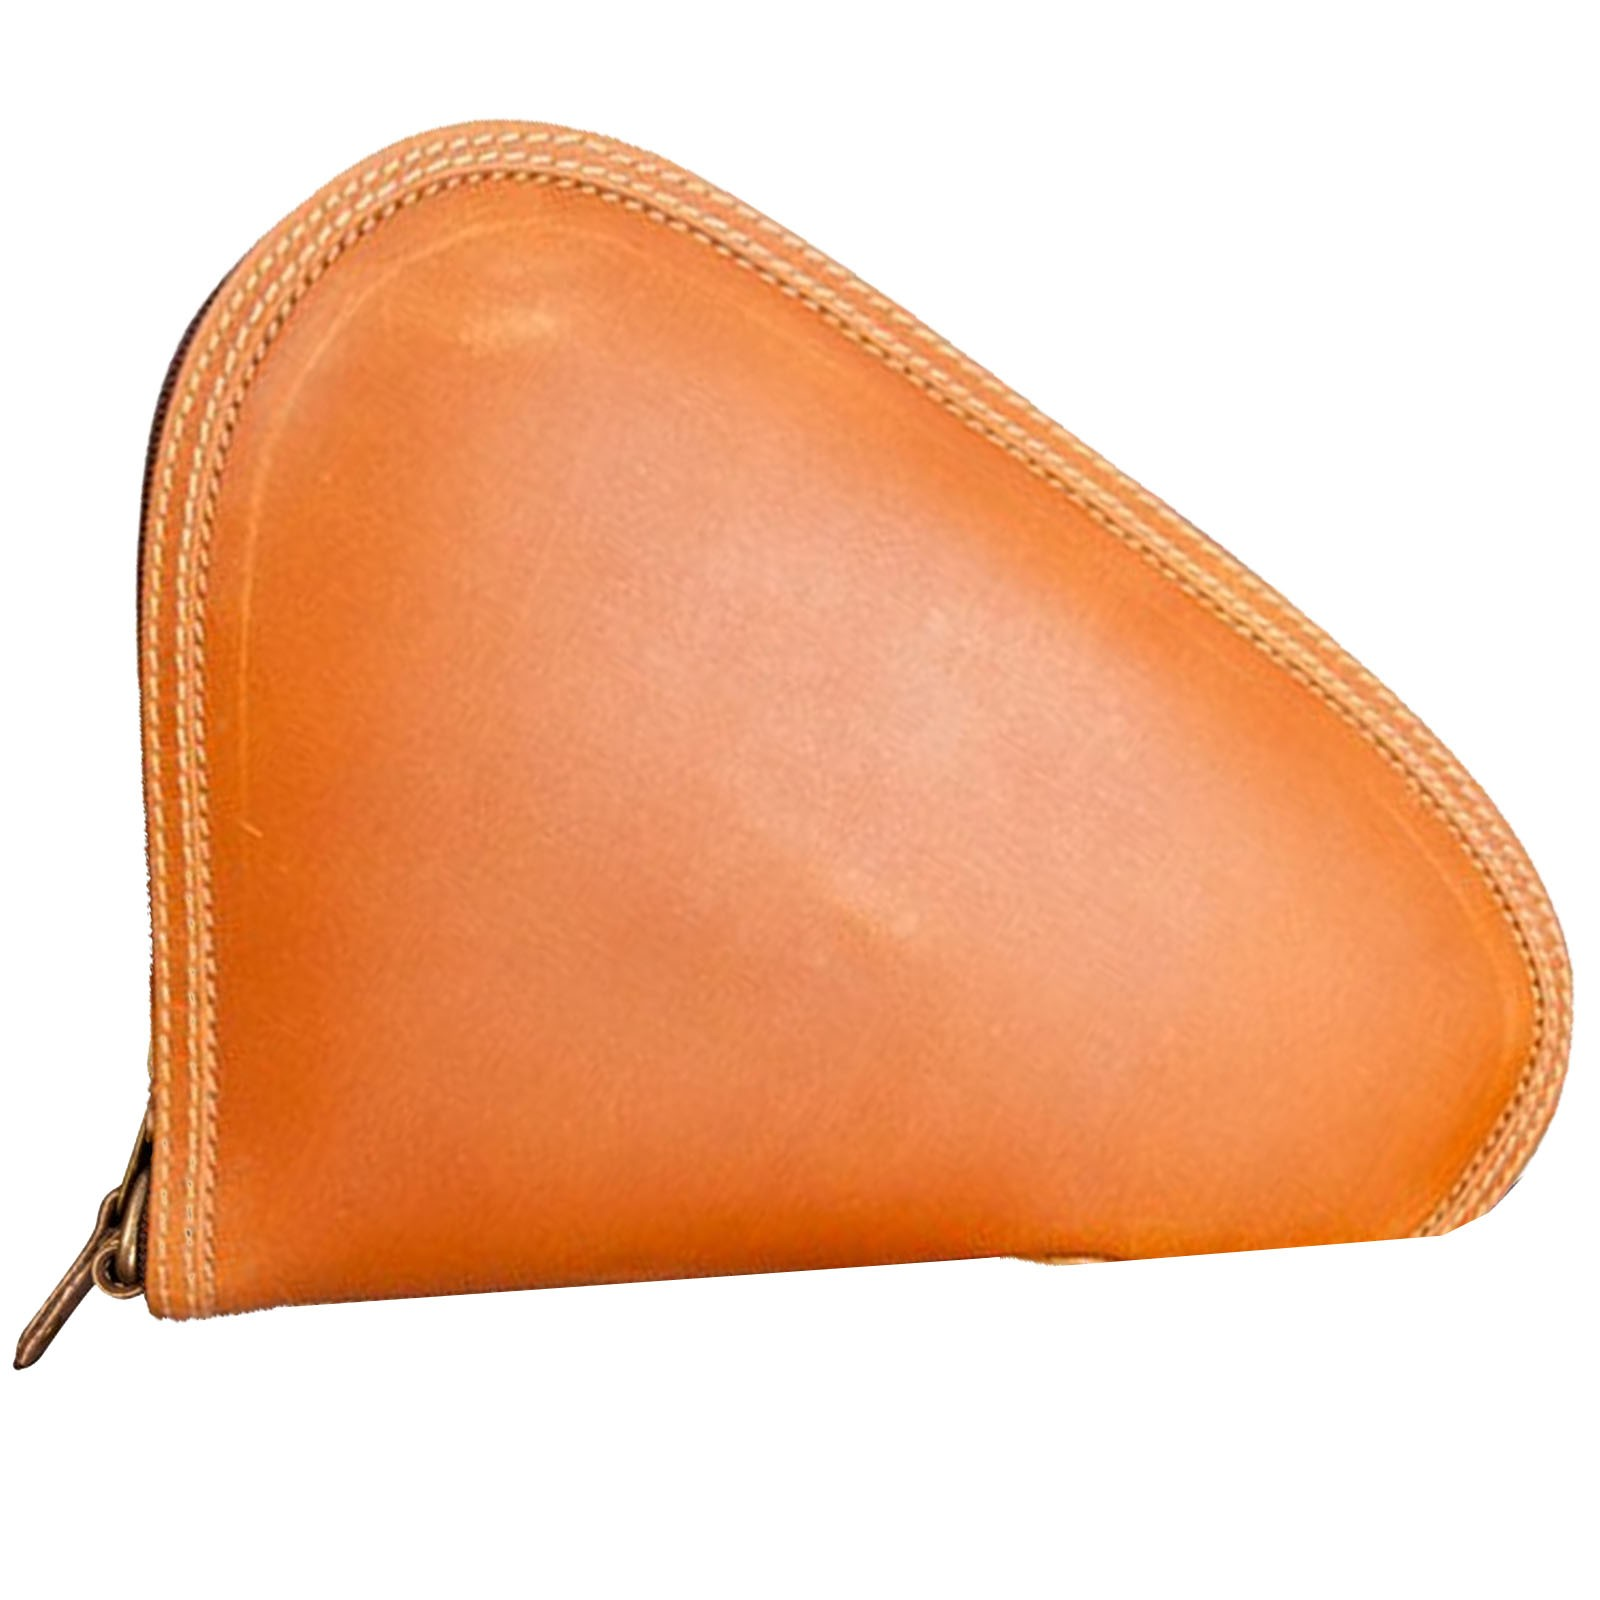 Canyon Outback Leather Sun Canyon Small Leather Pistol Case - Distressed Tan